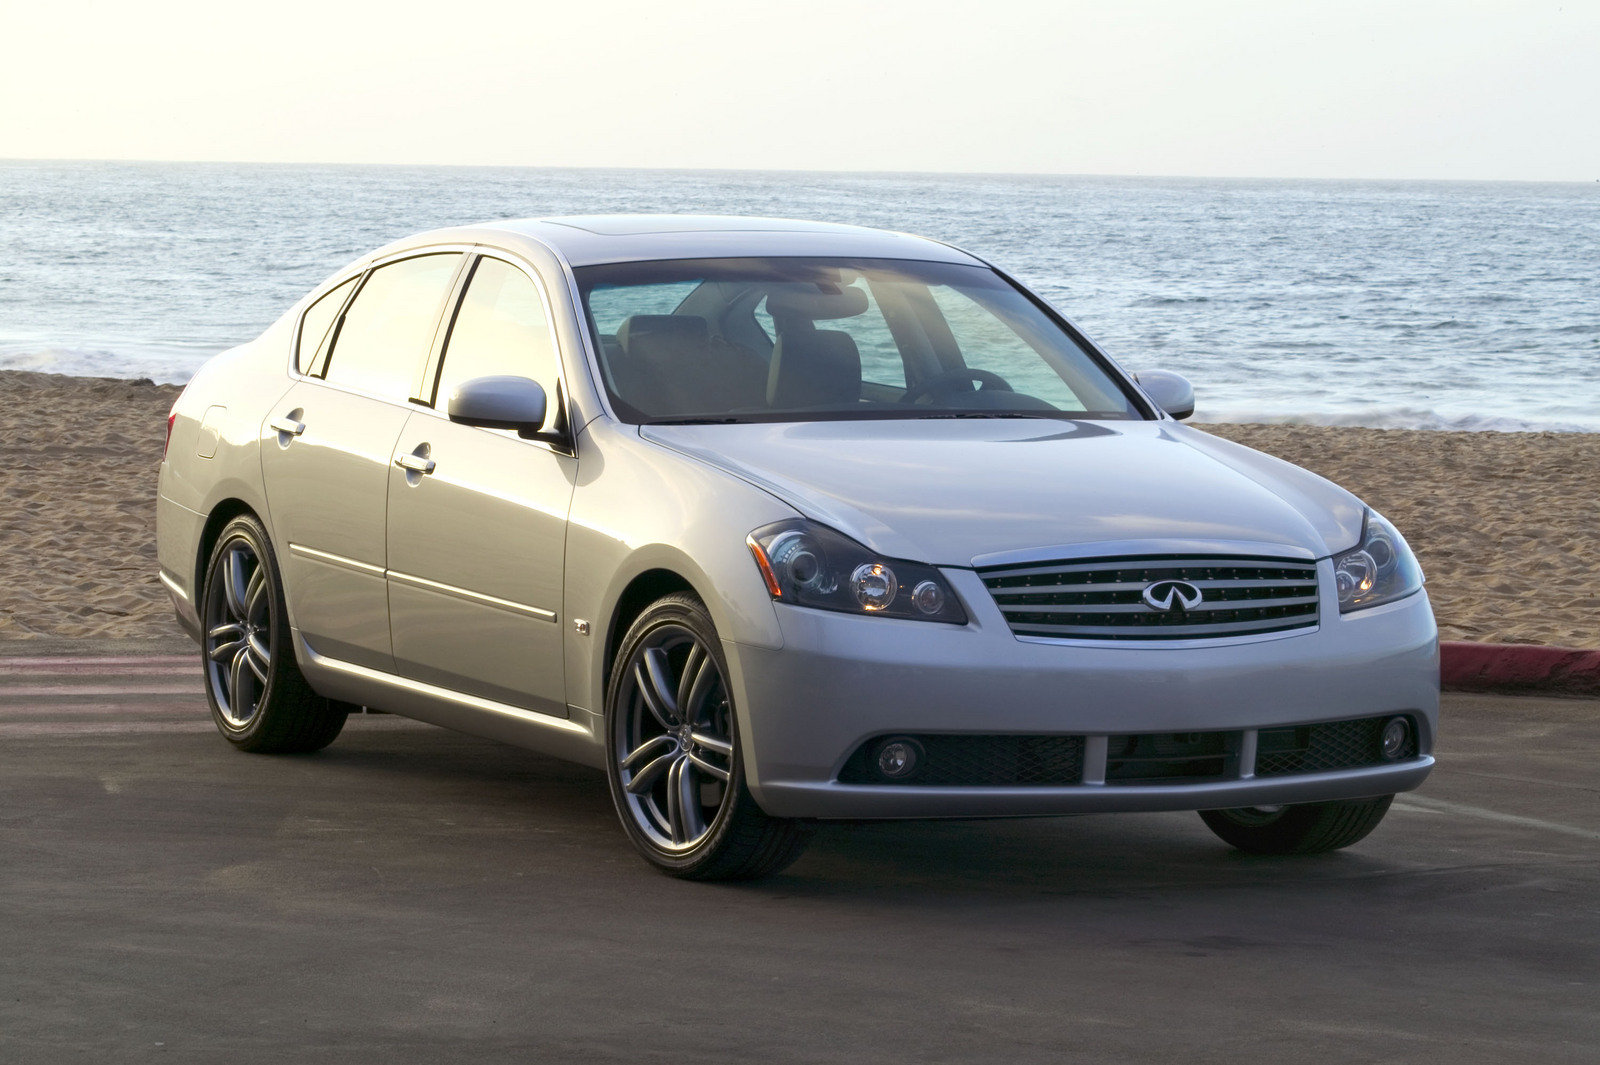 2006 infiniti m35 review top speed. Black Bedroom Furniture Sets. Home Design Ideas